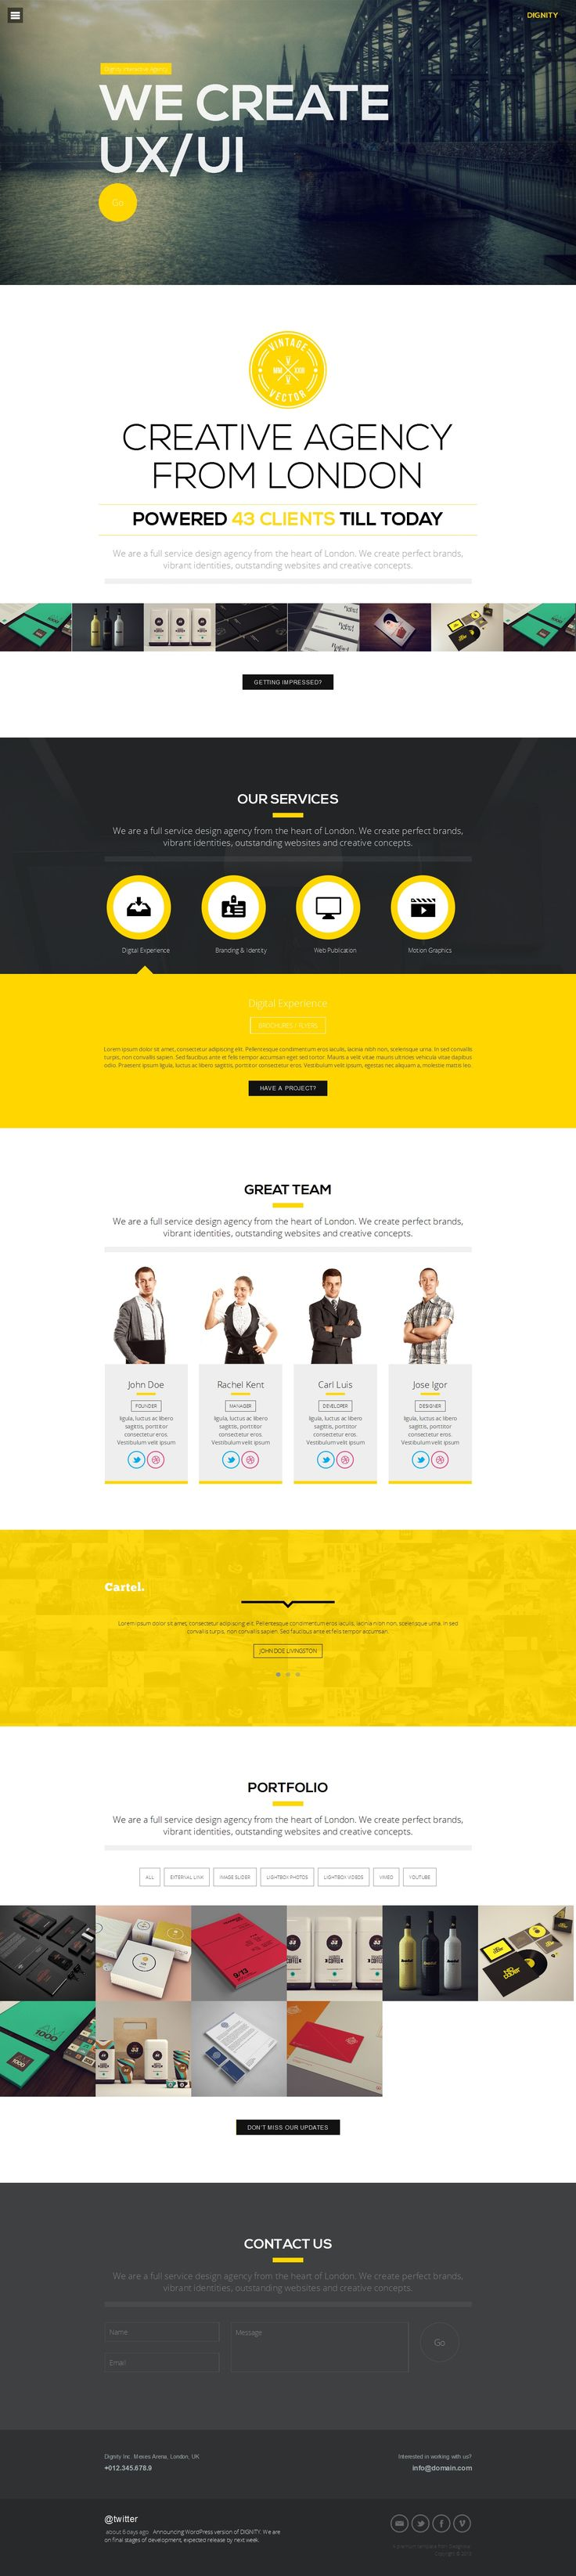 UI./UX professional DIGNITY - WordPress One Page Responsive Portfolio #web #design #portfolio Get this template from: http://themeforest.net/?ref=Vision7Studio